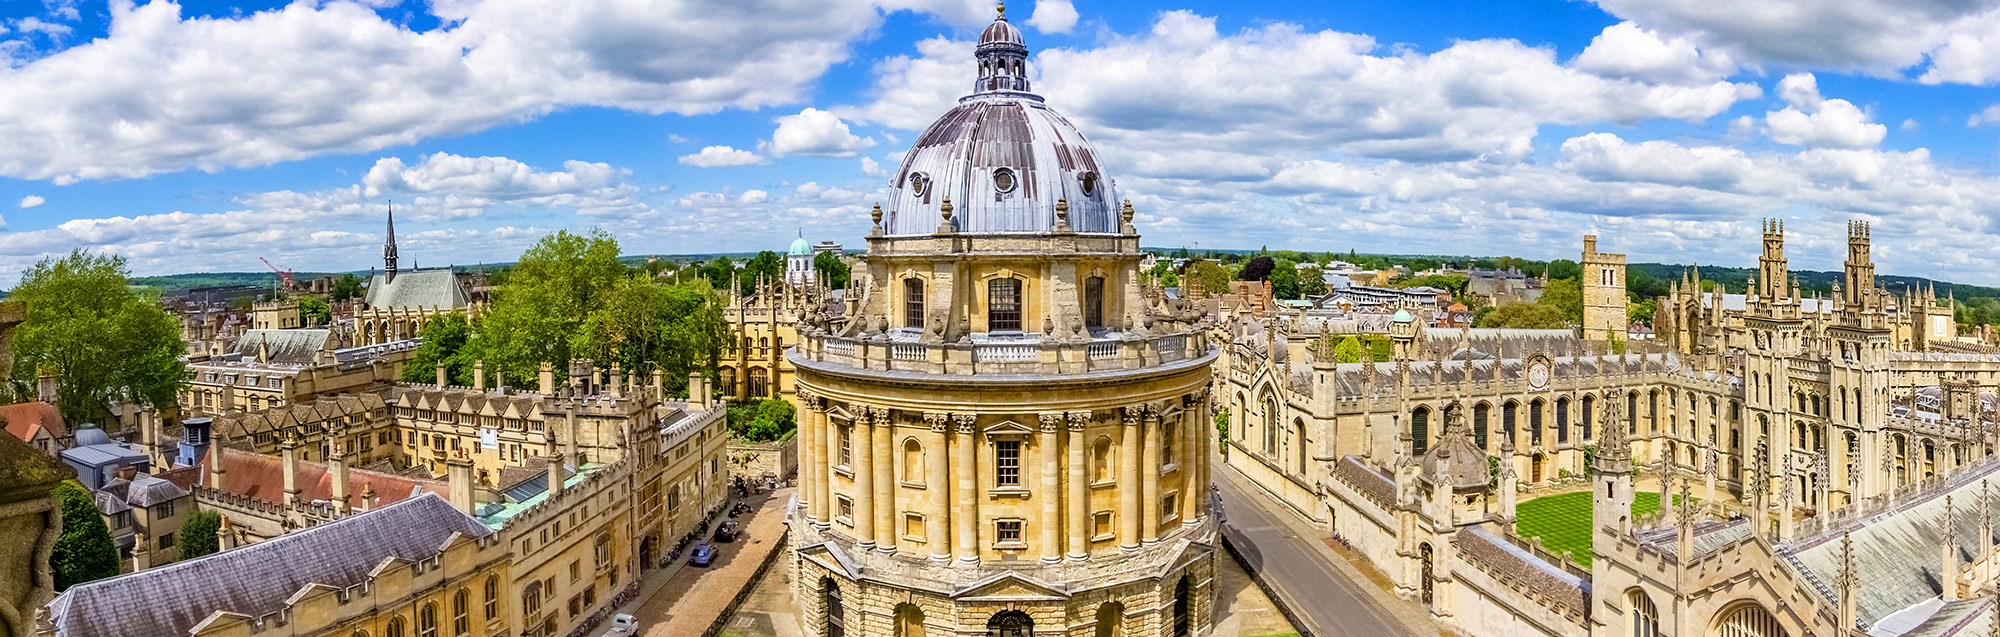 Vacanze studio a Oxford